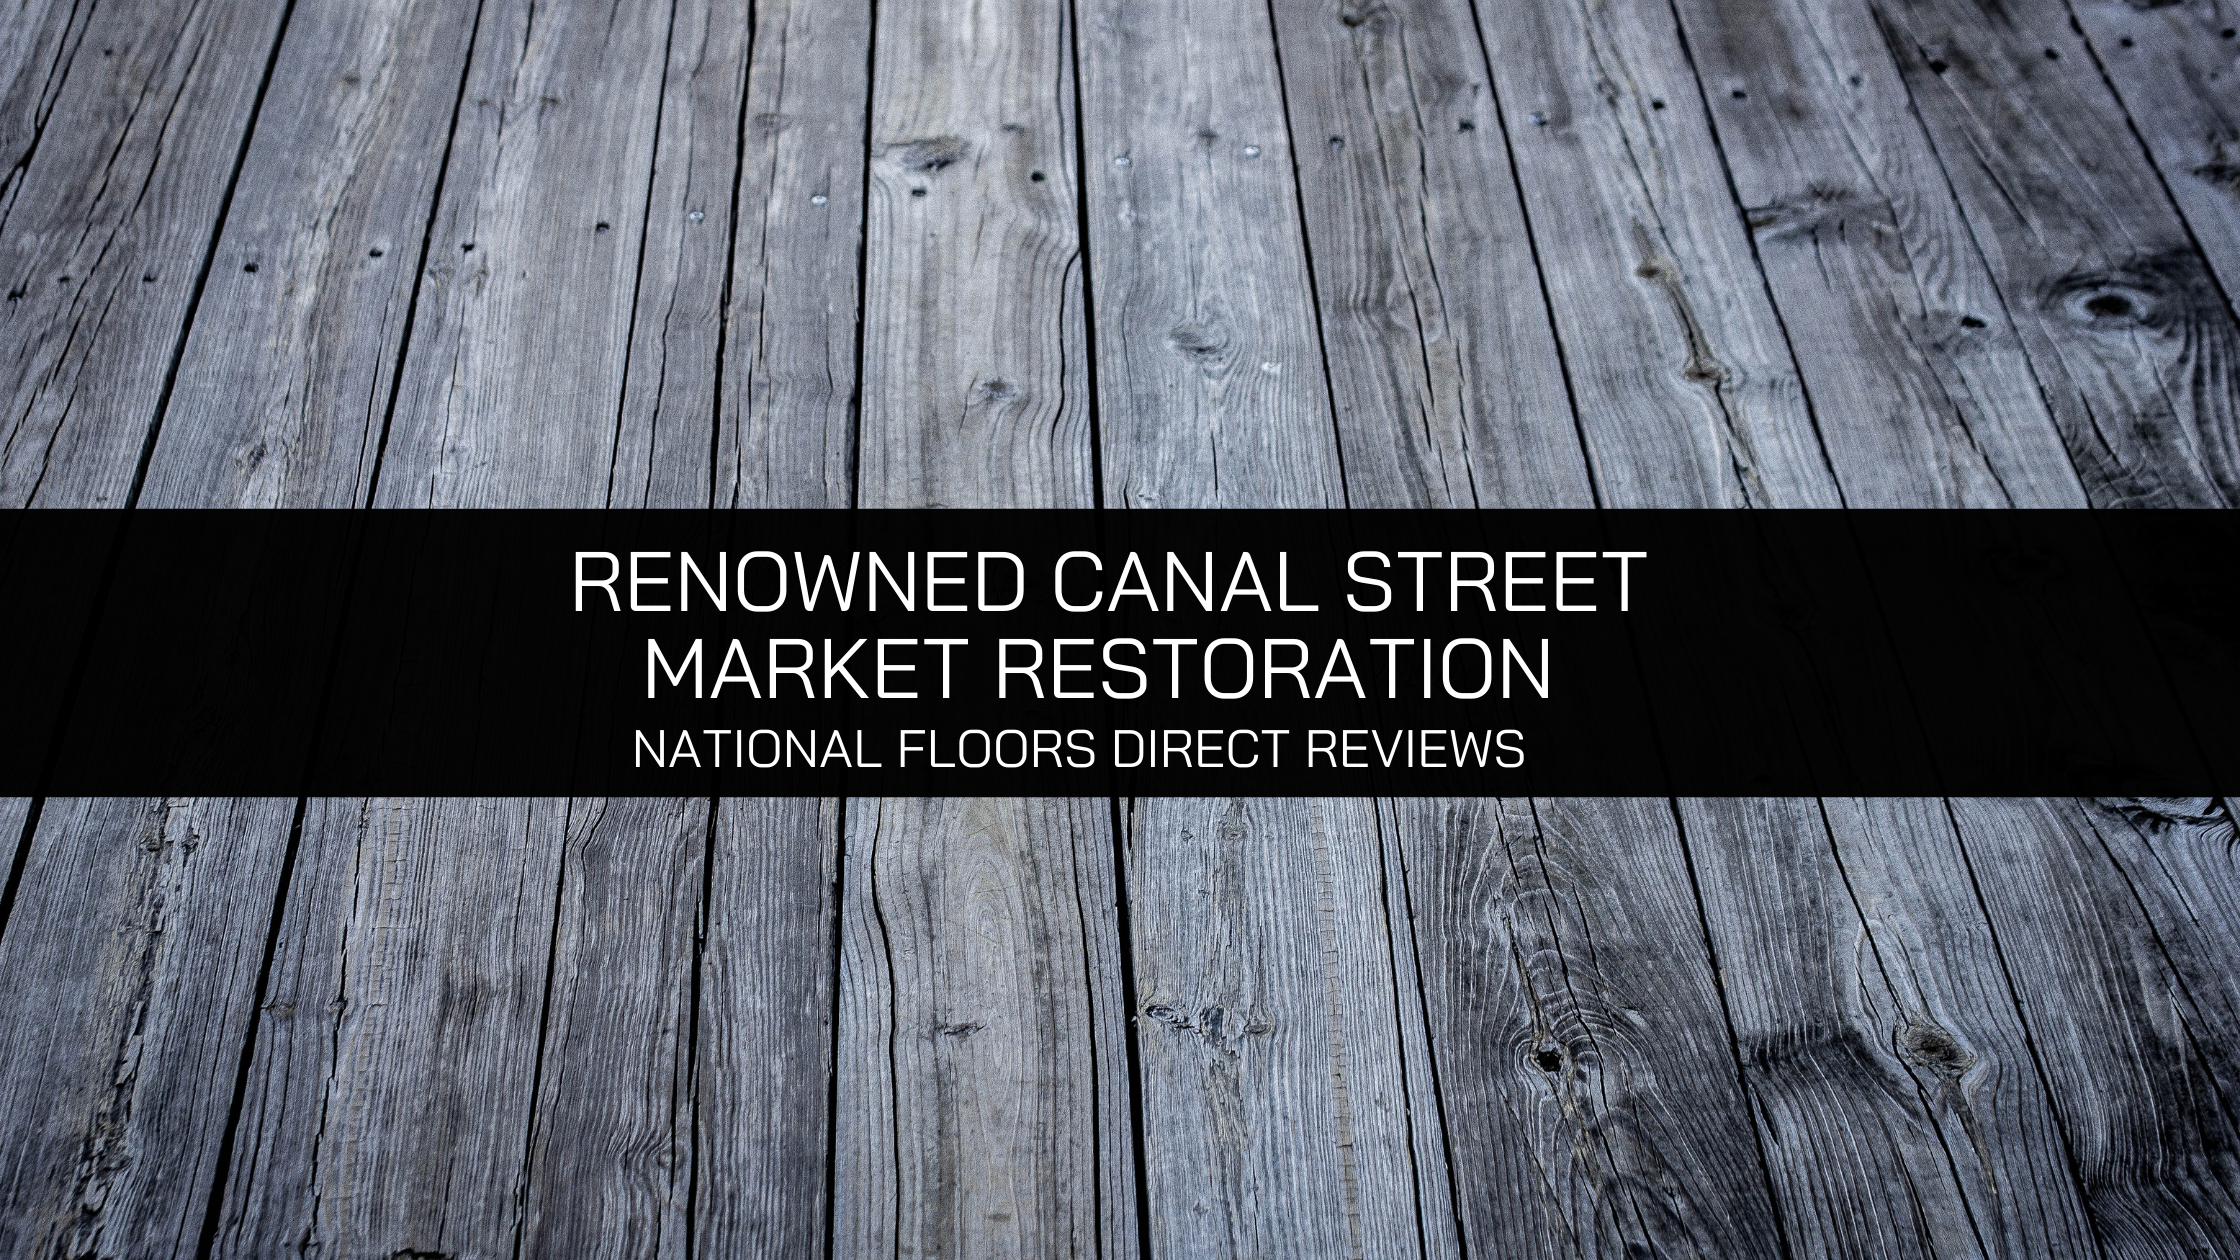 National Floors Direct Reviews: Renowned Canal Street Market Restoration